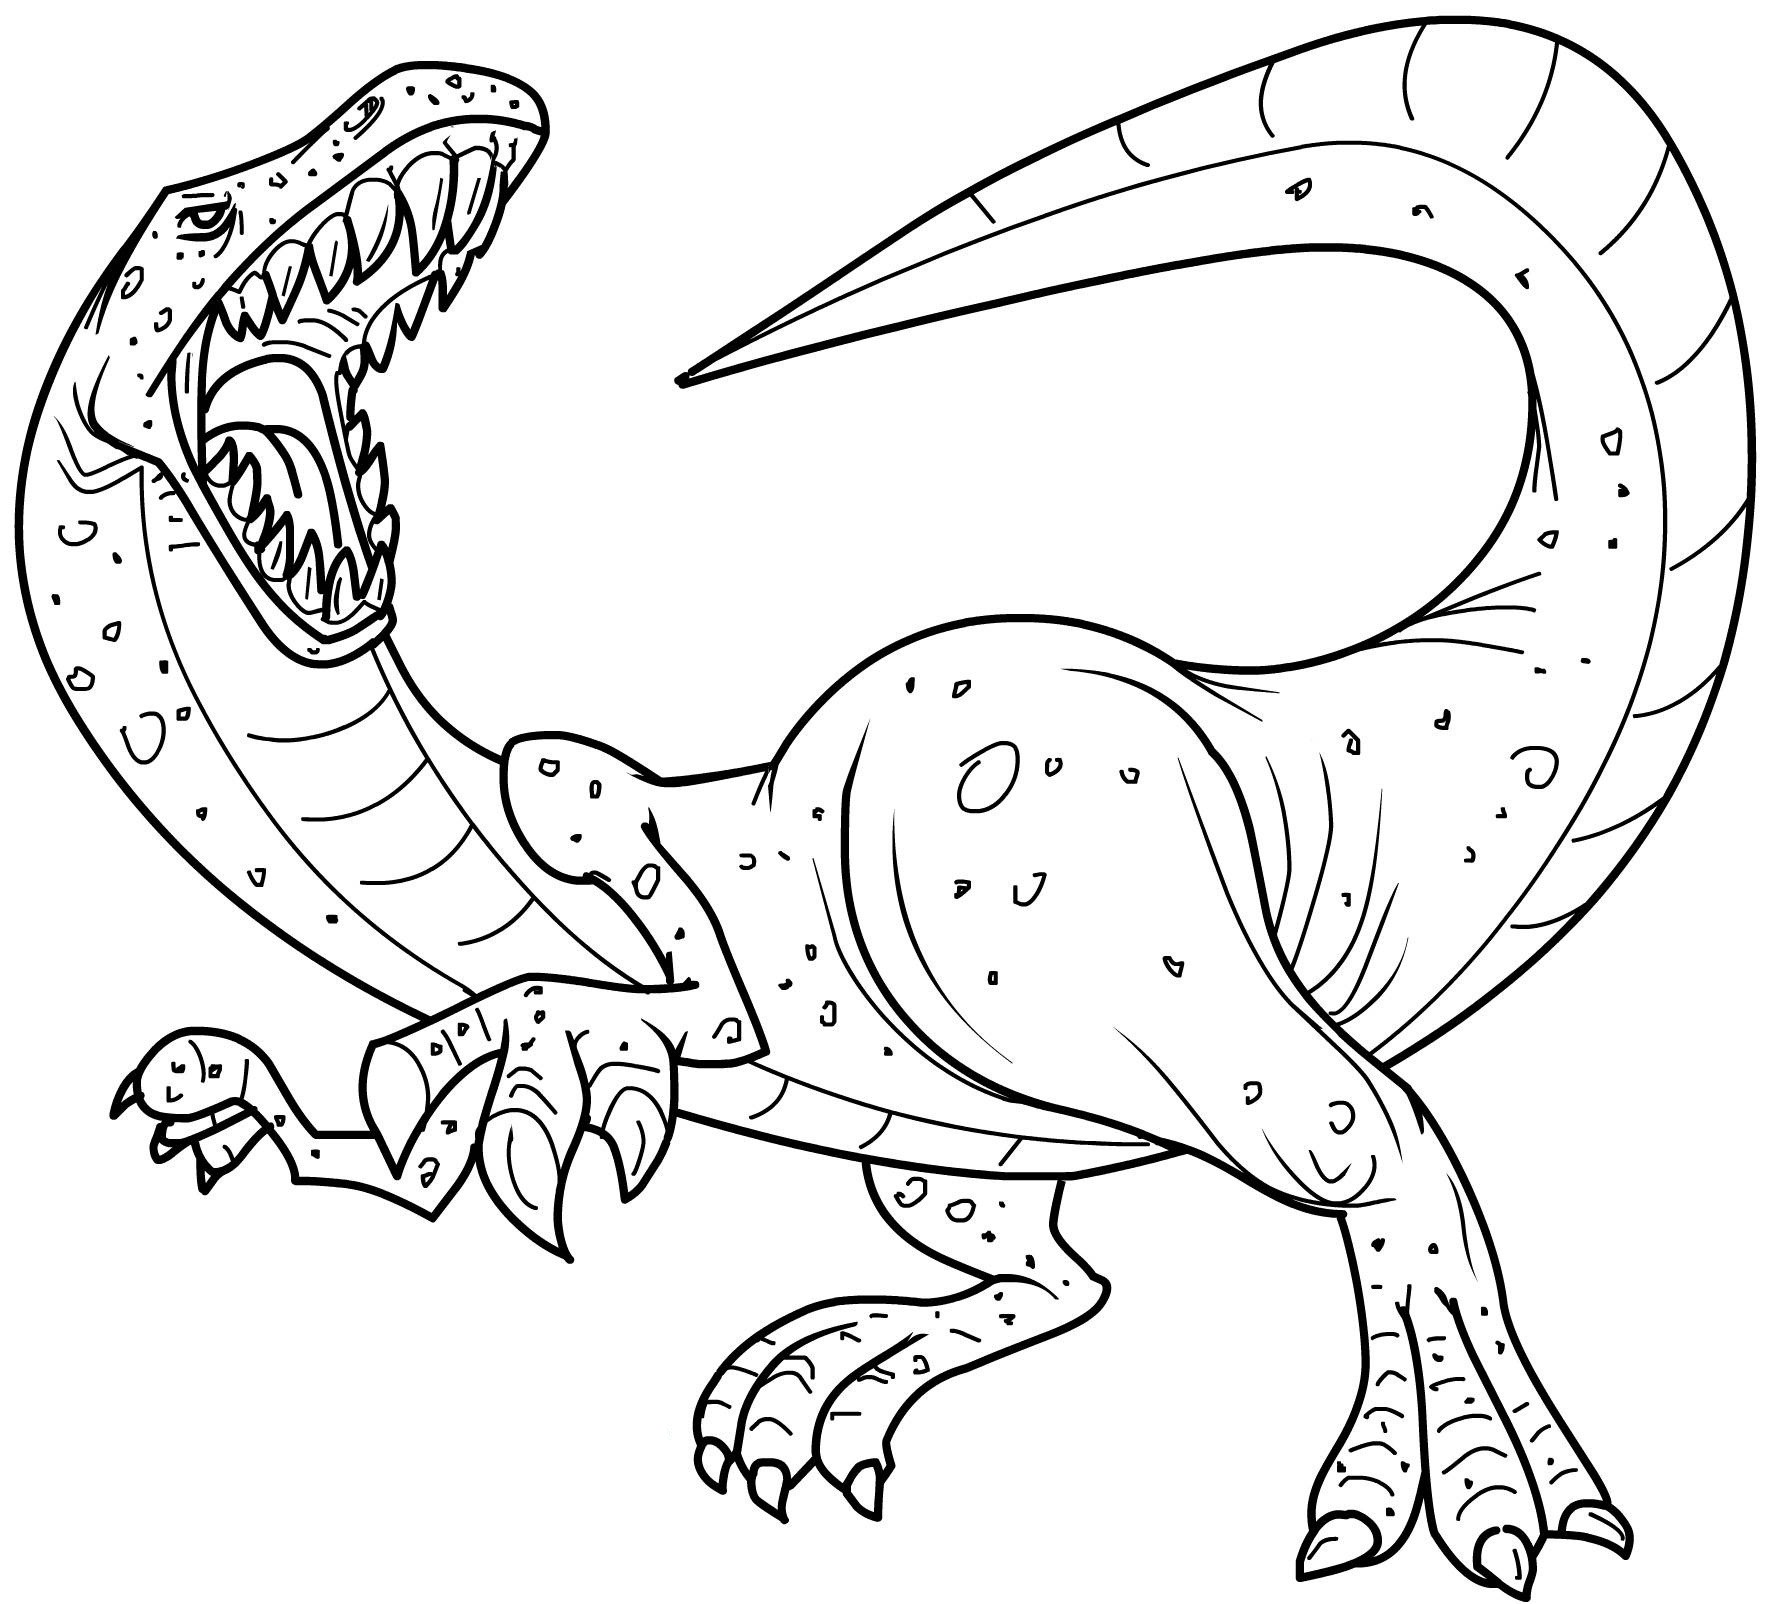 Coloring Pages Dinosuar Coloring Pages free printable dinosaur coloring pages for kids dinosaurs printables